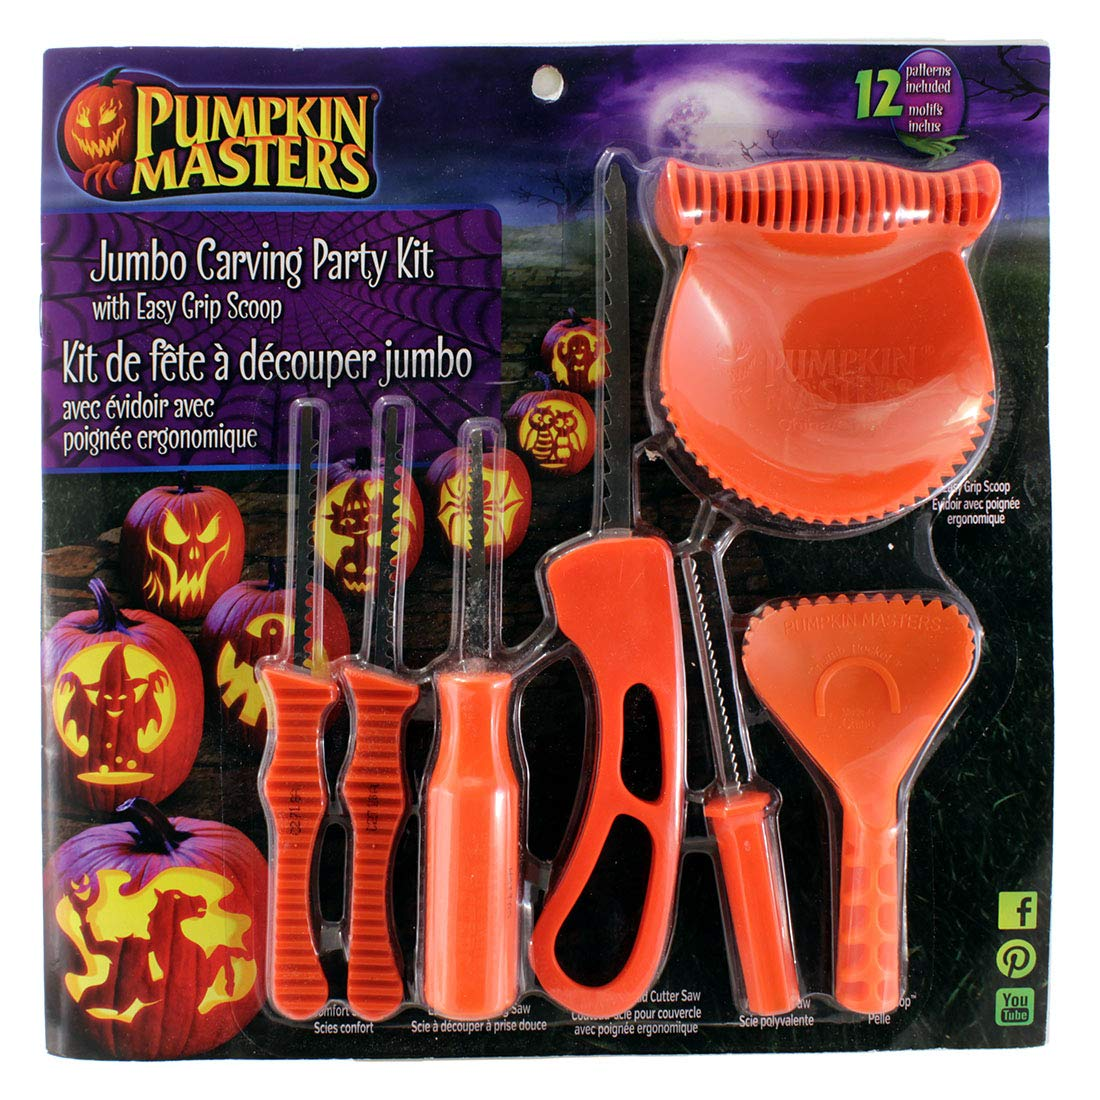 Pumpkin Masters Jumbo Carving Party Kit by Pumpkin Masters